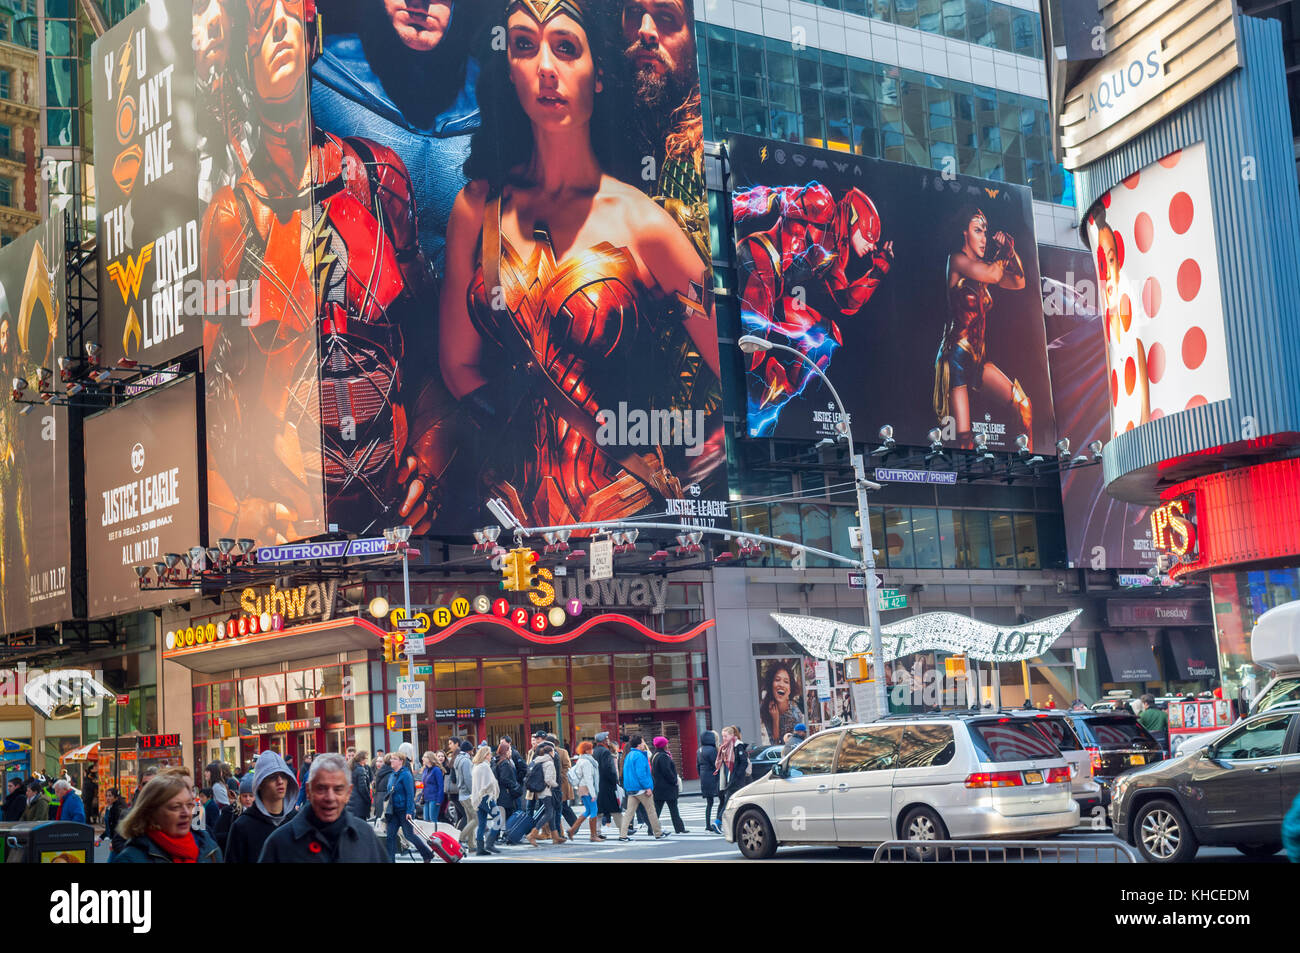 Advertising for the Warner Bros'  'Justice League' film is seen in Times Square in New York on Sunday, - Stock Image